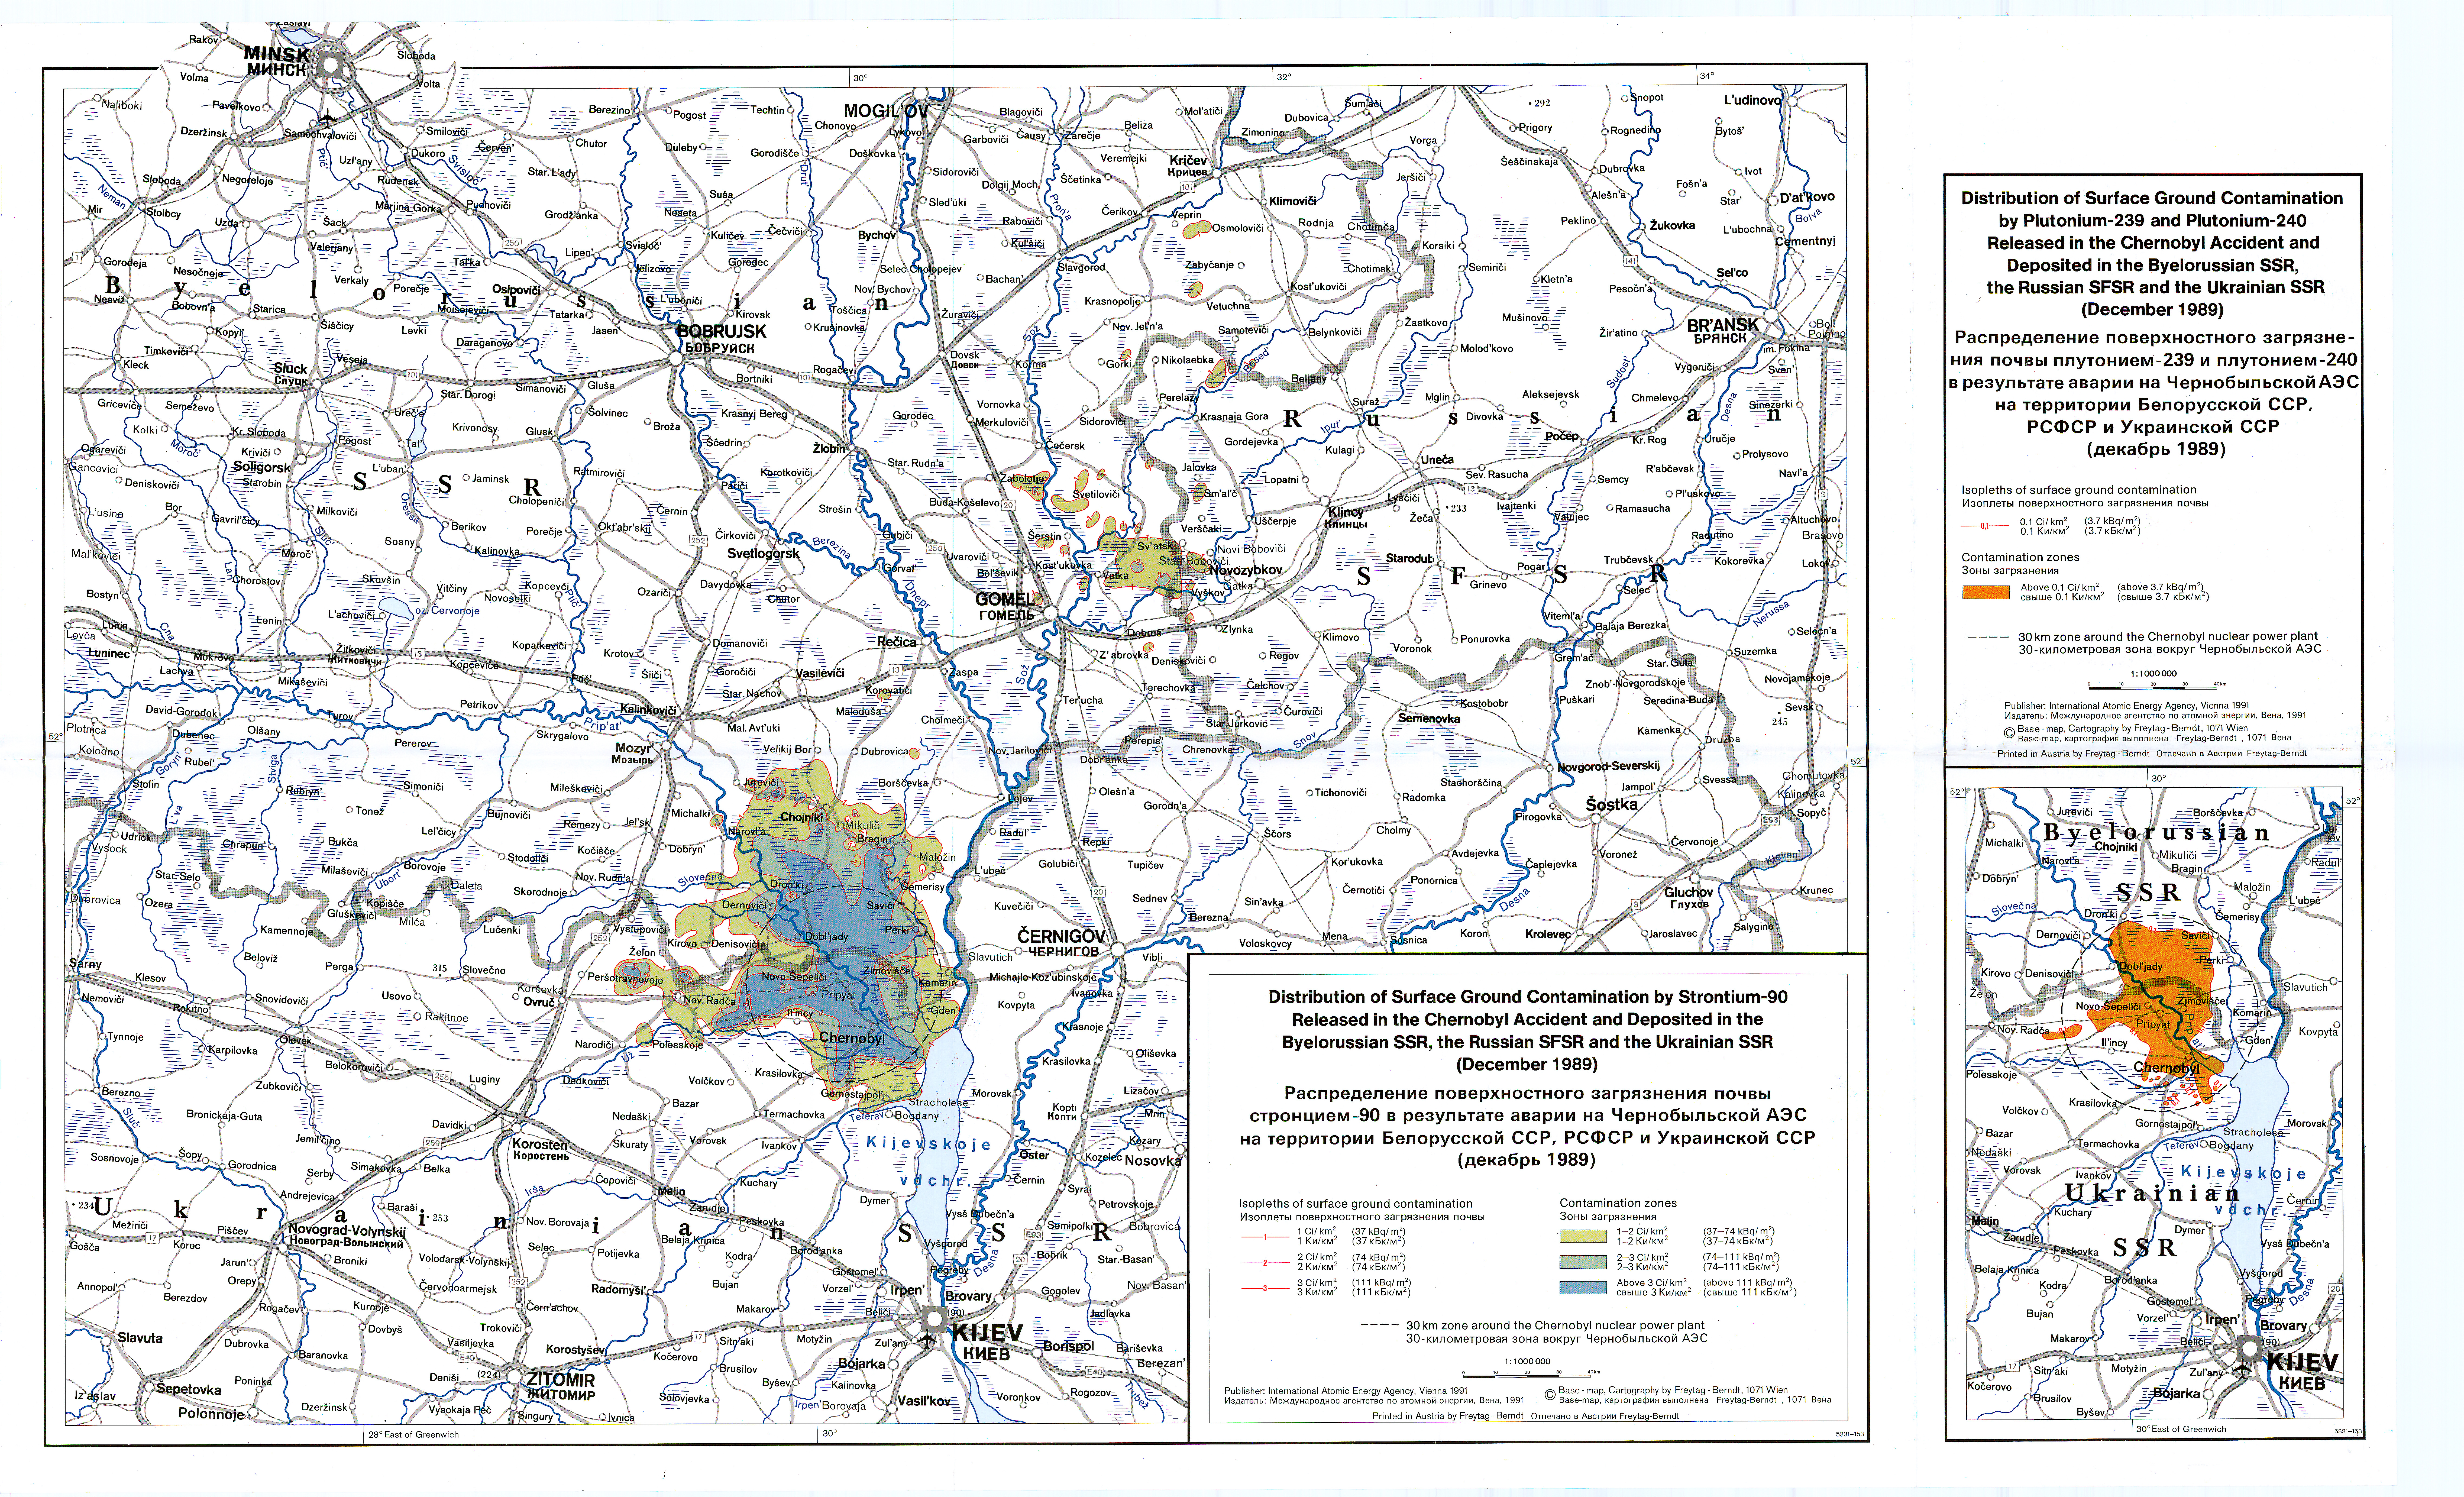 THE INTERNATIONAL CHERNOBYL PROJECT - SURFACE CONTAMINATION MAPS on ussr map, chernobyl disaster, deaths due to the chernobyl disaster, yalta map, s.t.a.l.k.e.r.: shadow of chernobyl, minsk map, pripyat river, moscow map, chernobyl disaster effects, vladivostok map, russia map, kazan map, balkan peninsula map, new safe confinement, fukushima map, ukrainian national chernobyl museum, ukraine map, pripyat map, grozny map, crimean map, donetsk map, prypjat vergnügungspark, kiev map, siberia map, poland map, red forest, chernobyl nuclear power plant sarcophagus, italy map, belarus map, three mile island accident, kyshtym disaster, europe map, chernobyl necklace, polissya hotel,